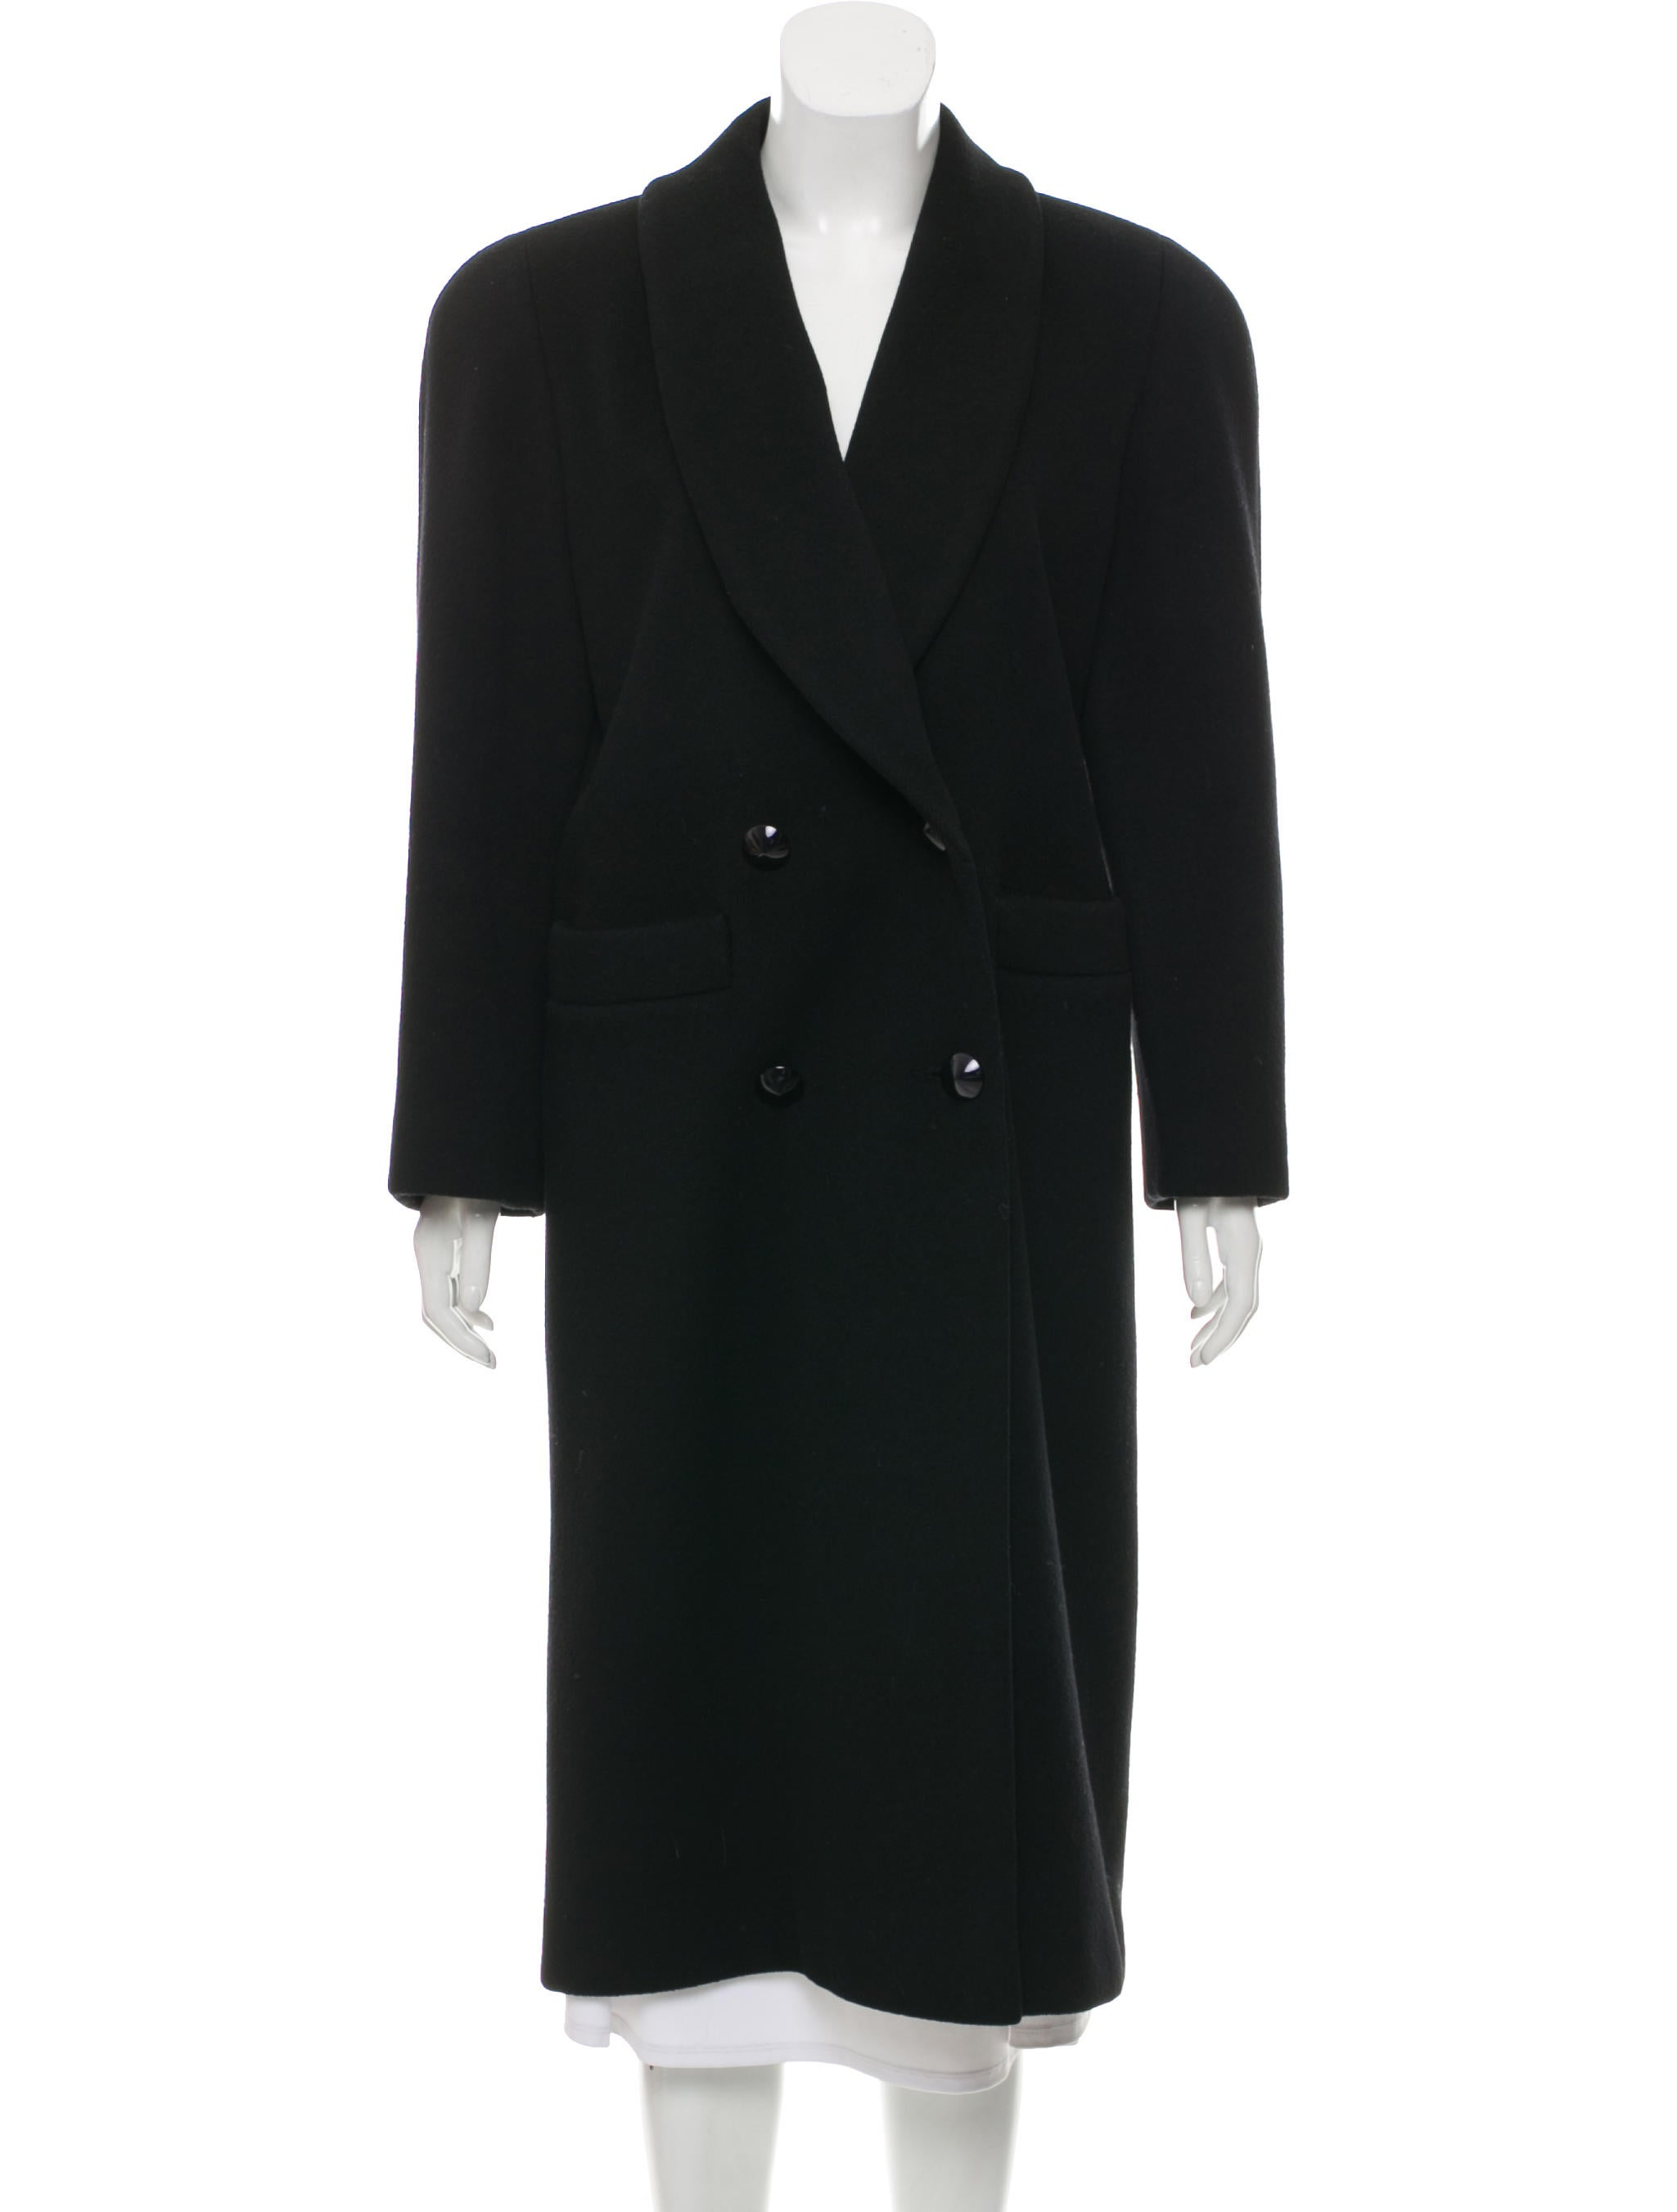 Vintage Wool Double Breasted Coat by Christian Dior